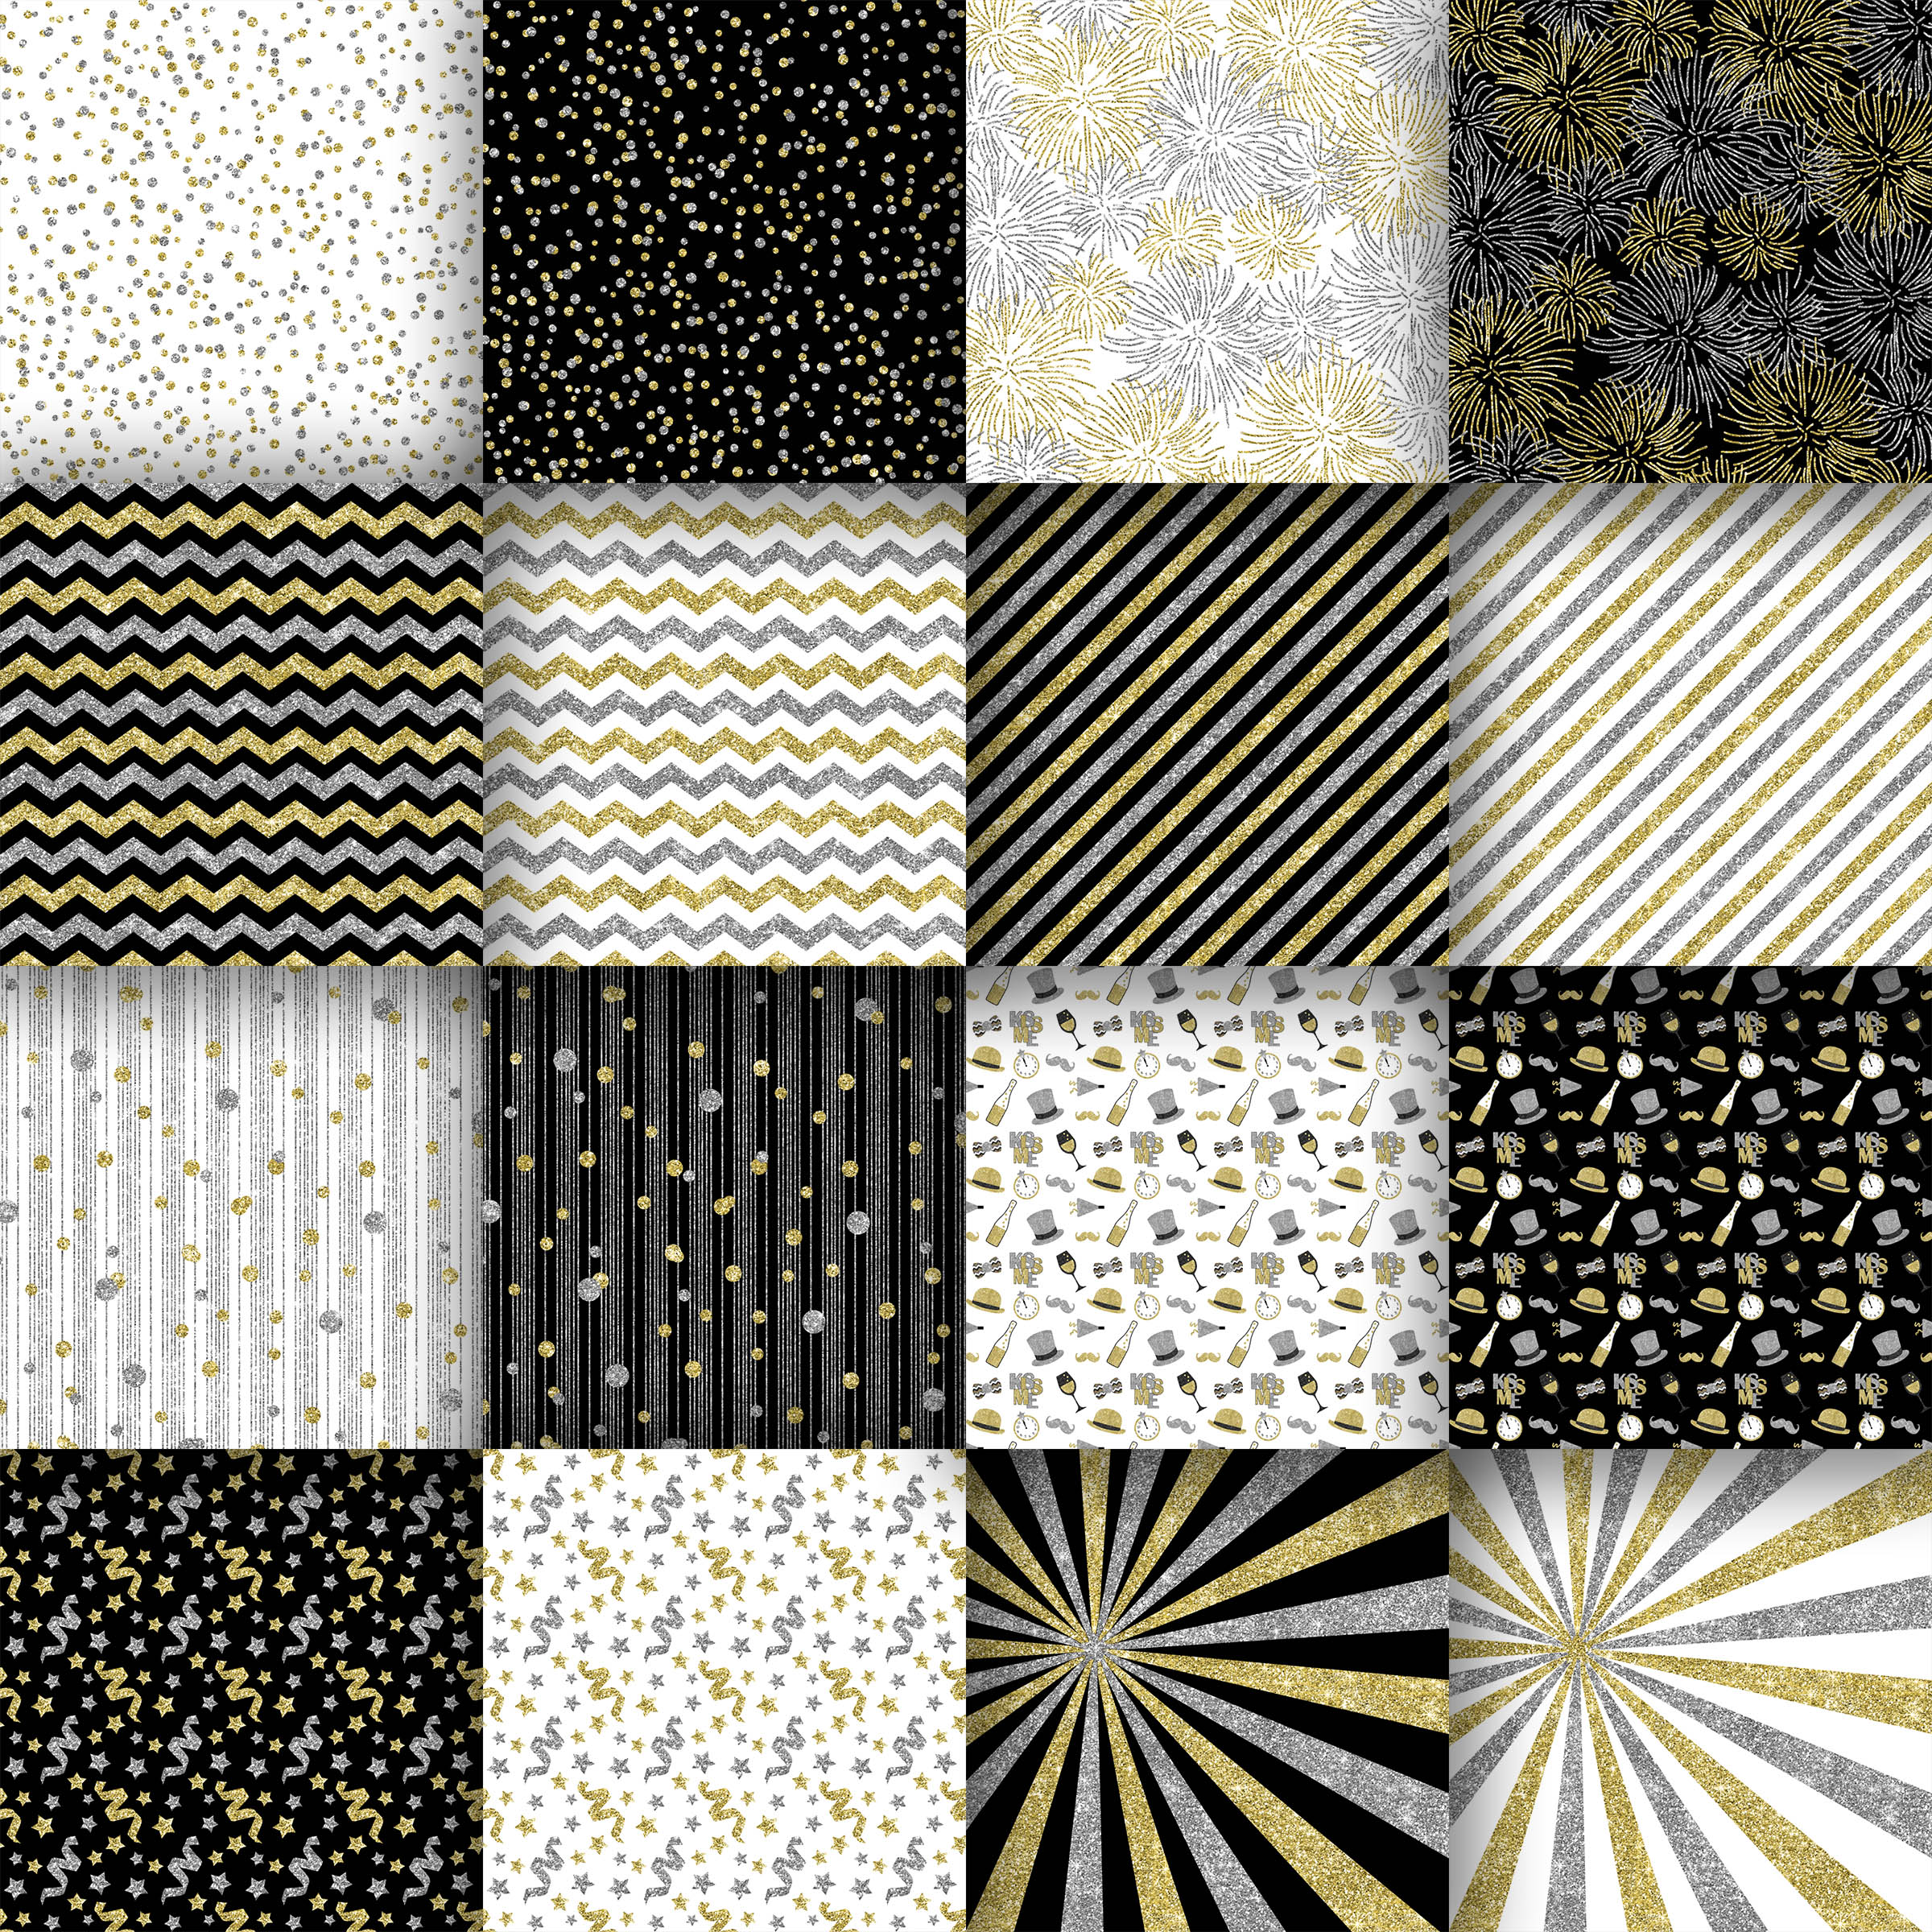 New Year Glitter Digital Paper Graphic Backgrounds By oldmarketdesigns - Image 2